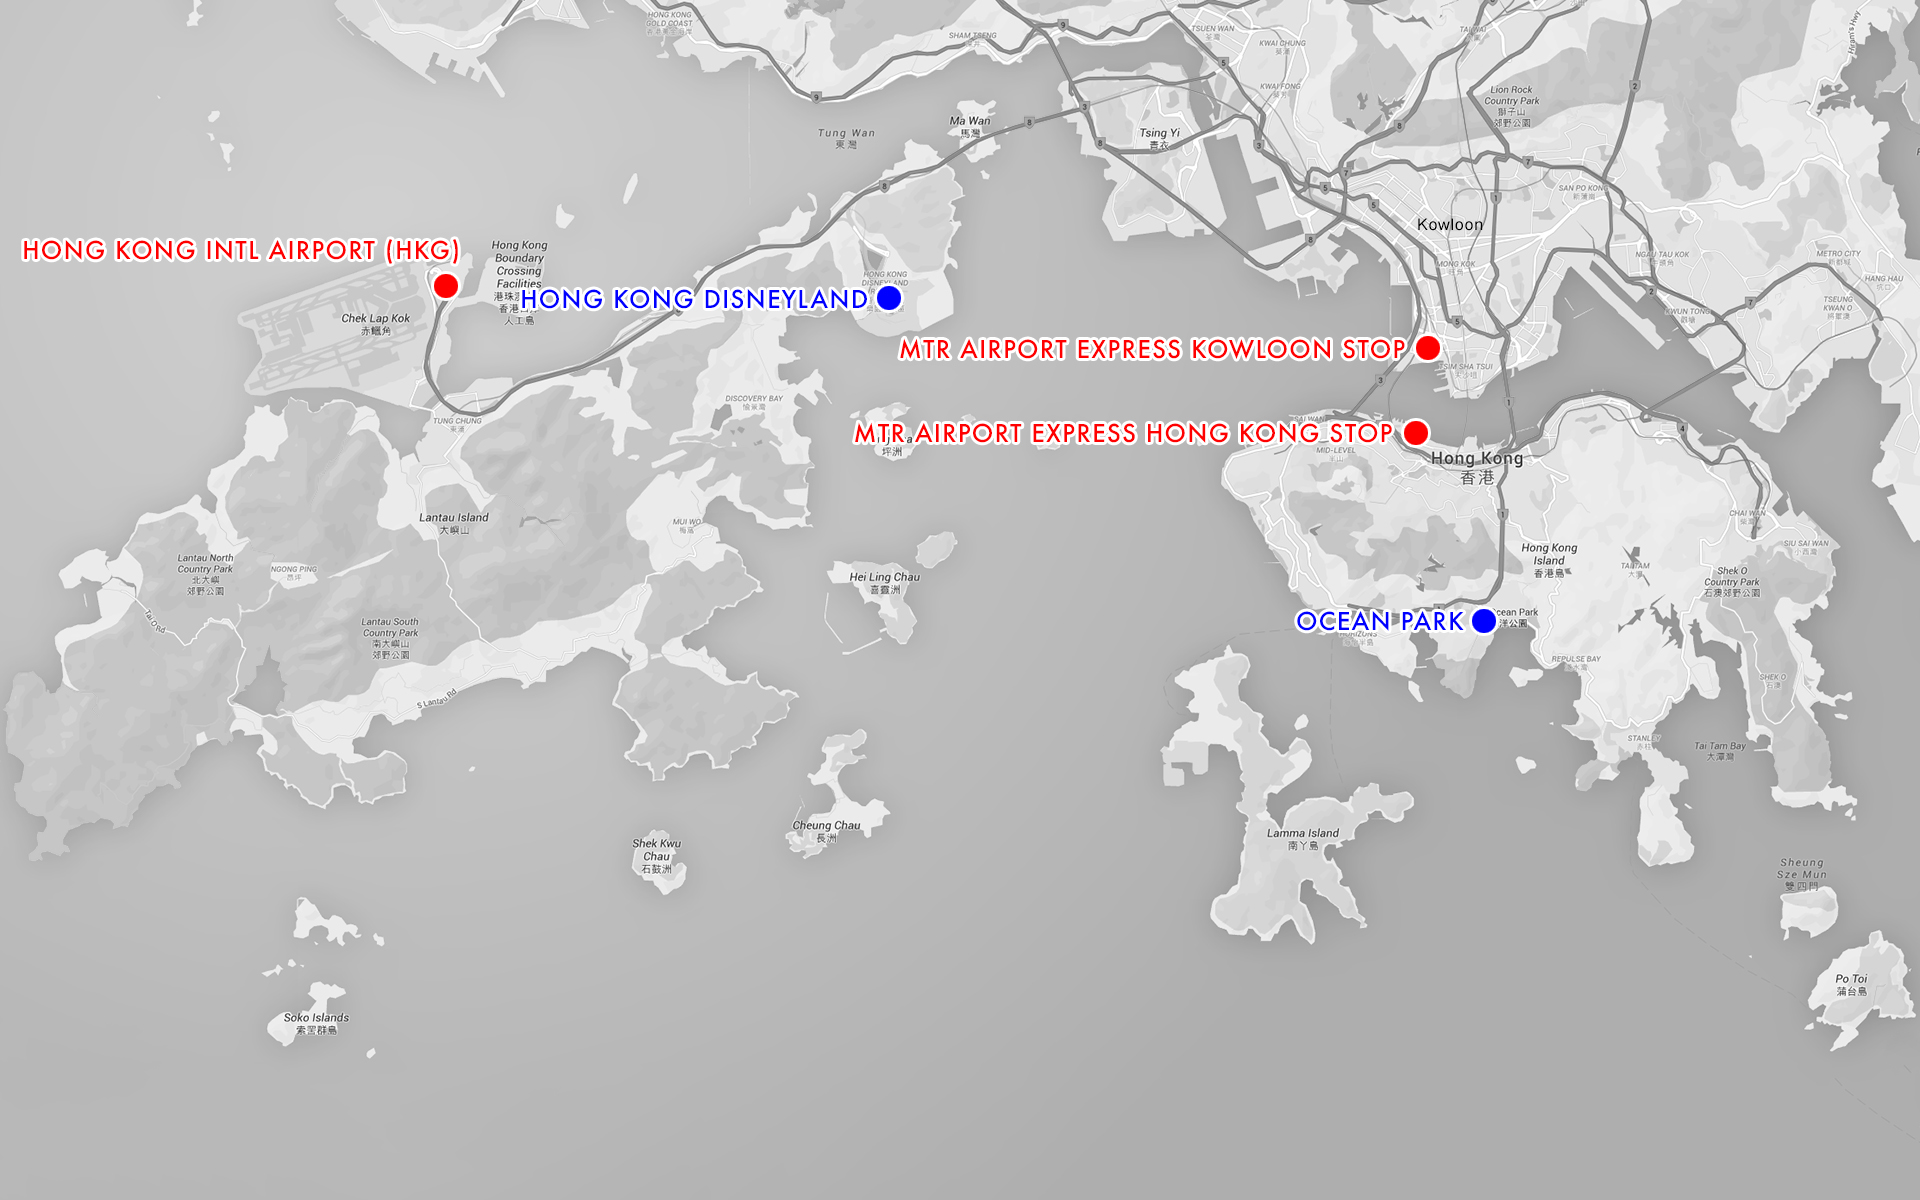 The Hong Kong International Airport and the main relevant stops of the MTR Airport Express are shown, with Hong Kong Disneyland and Ocean Park located for reference.